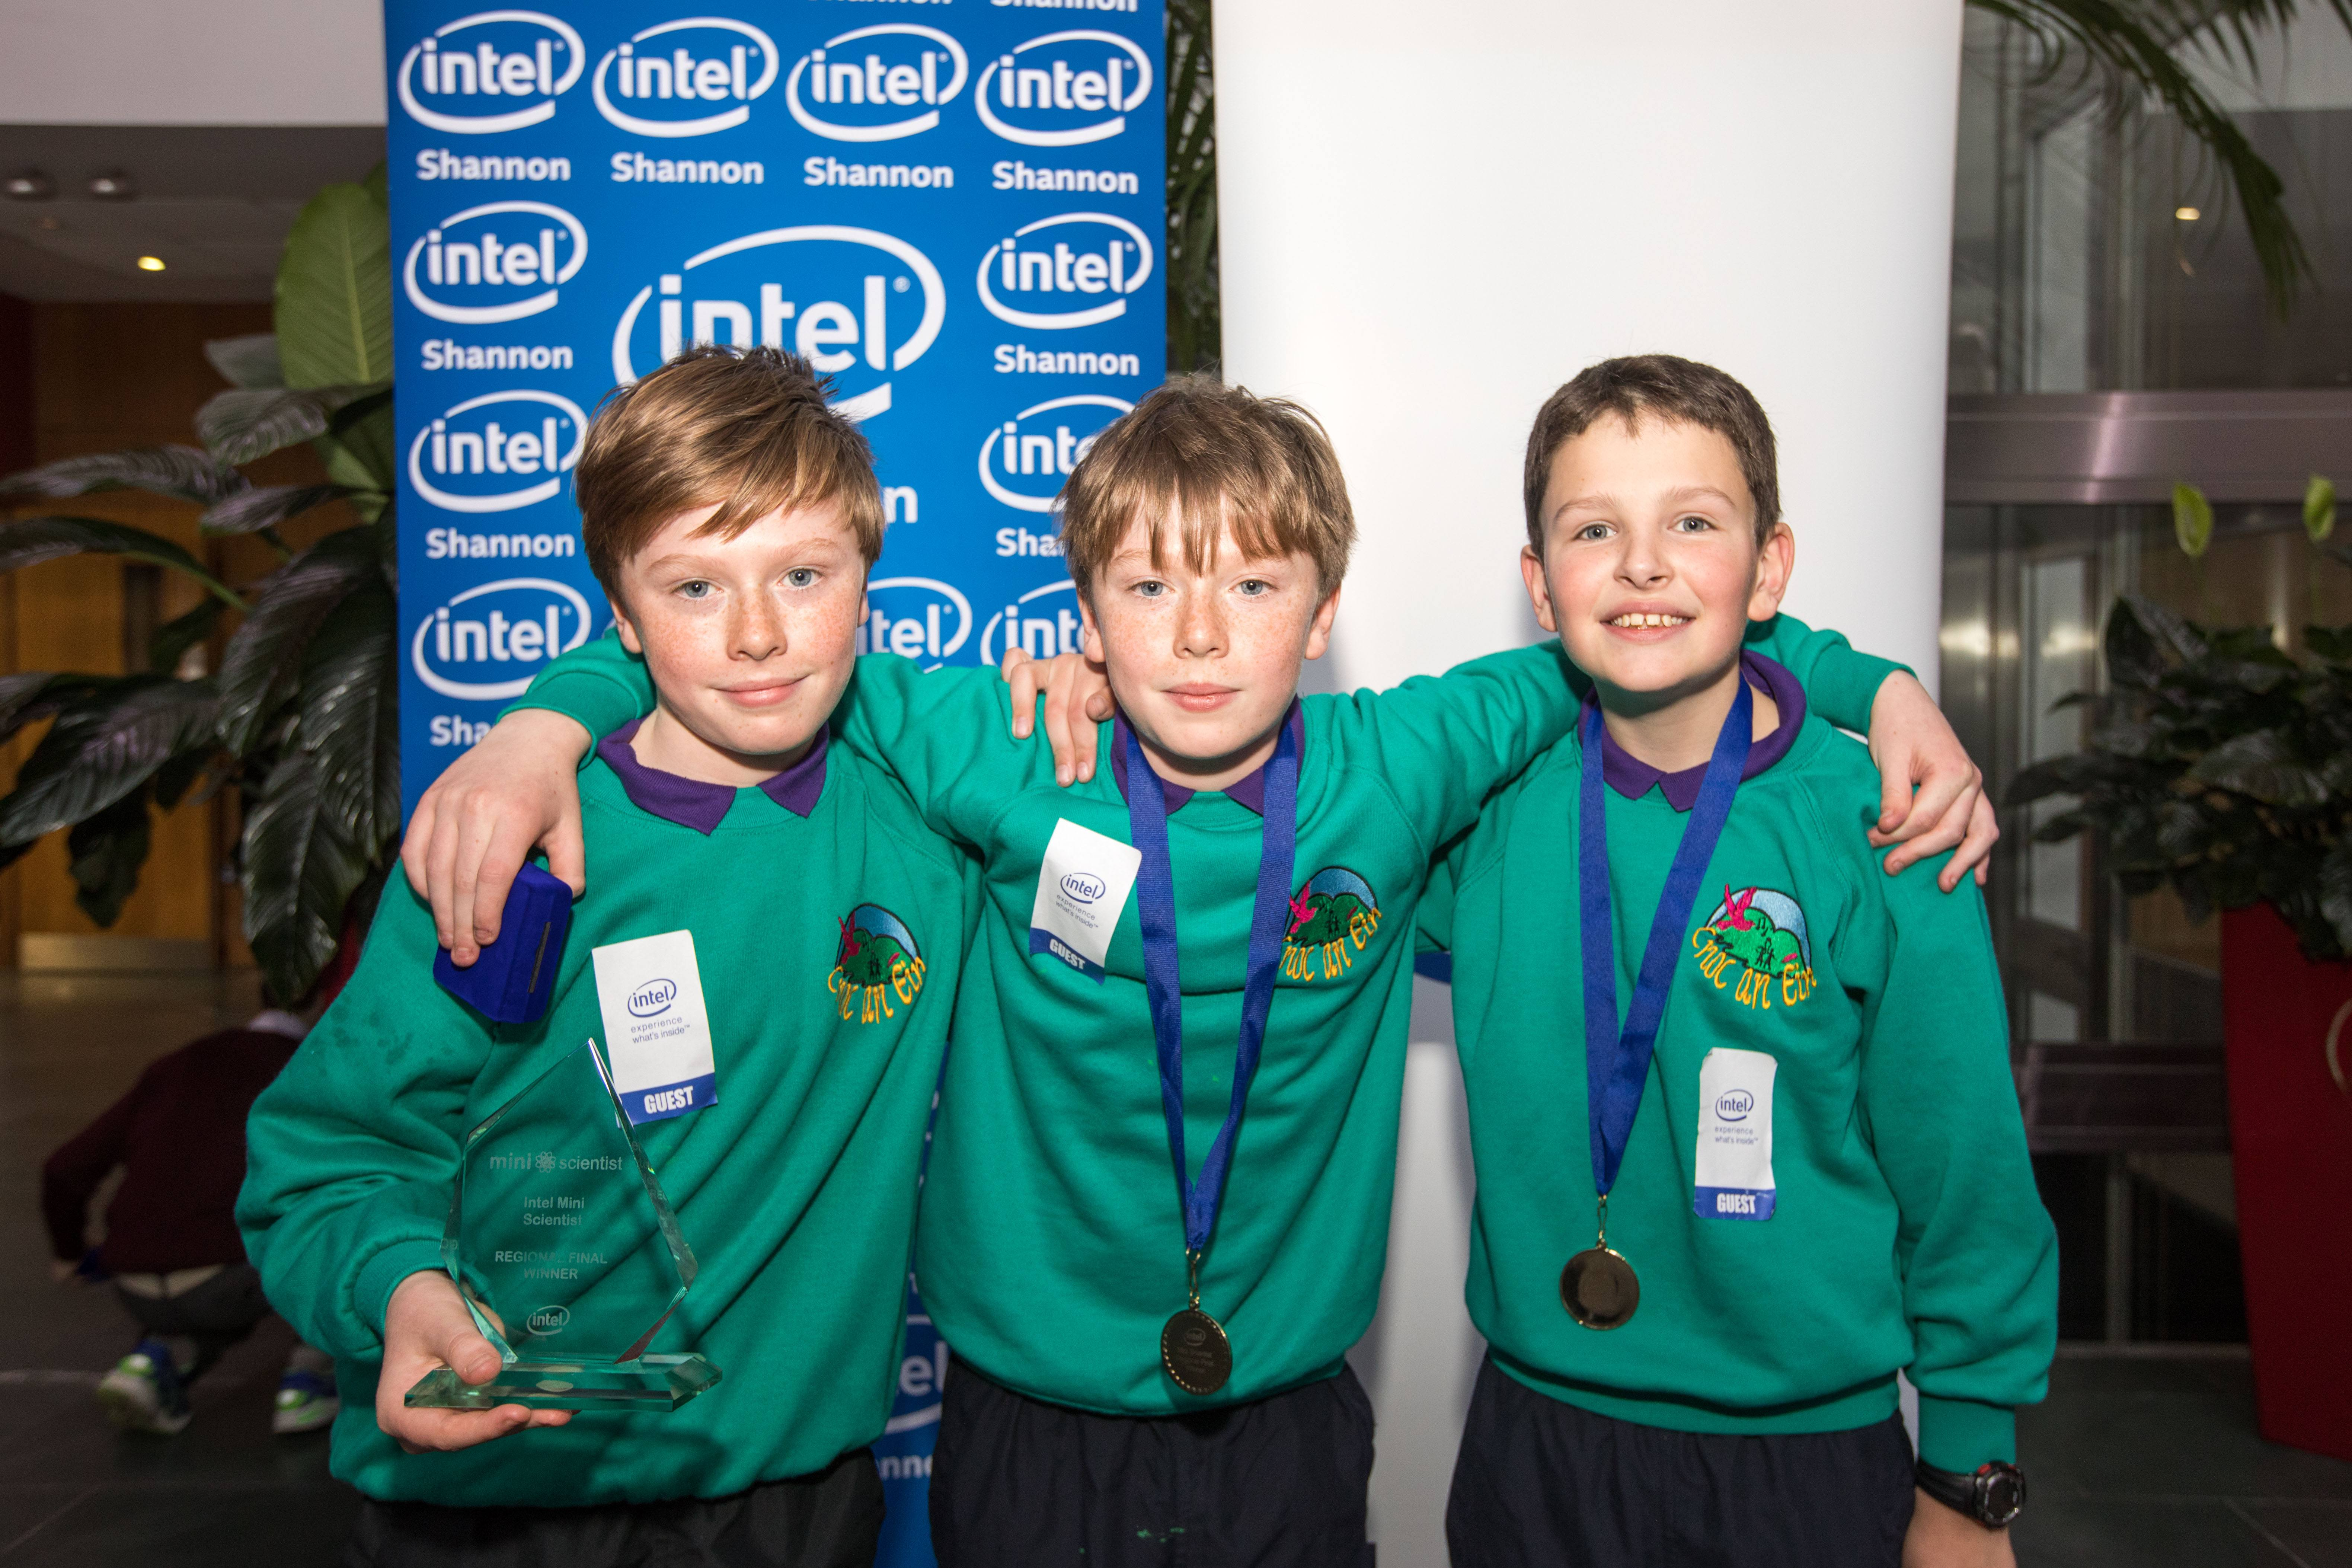 intel-snn-mini-scientist-100